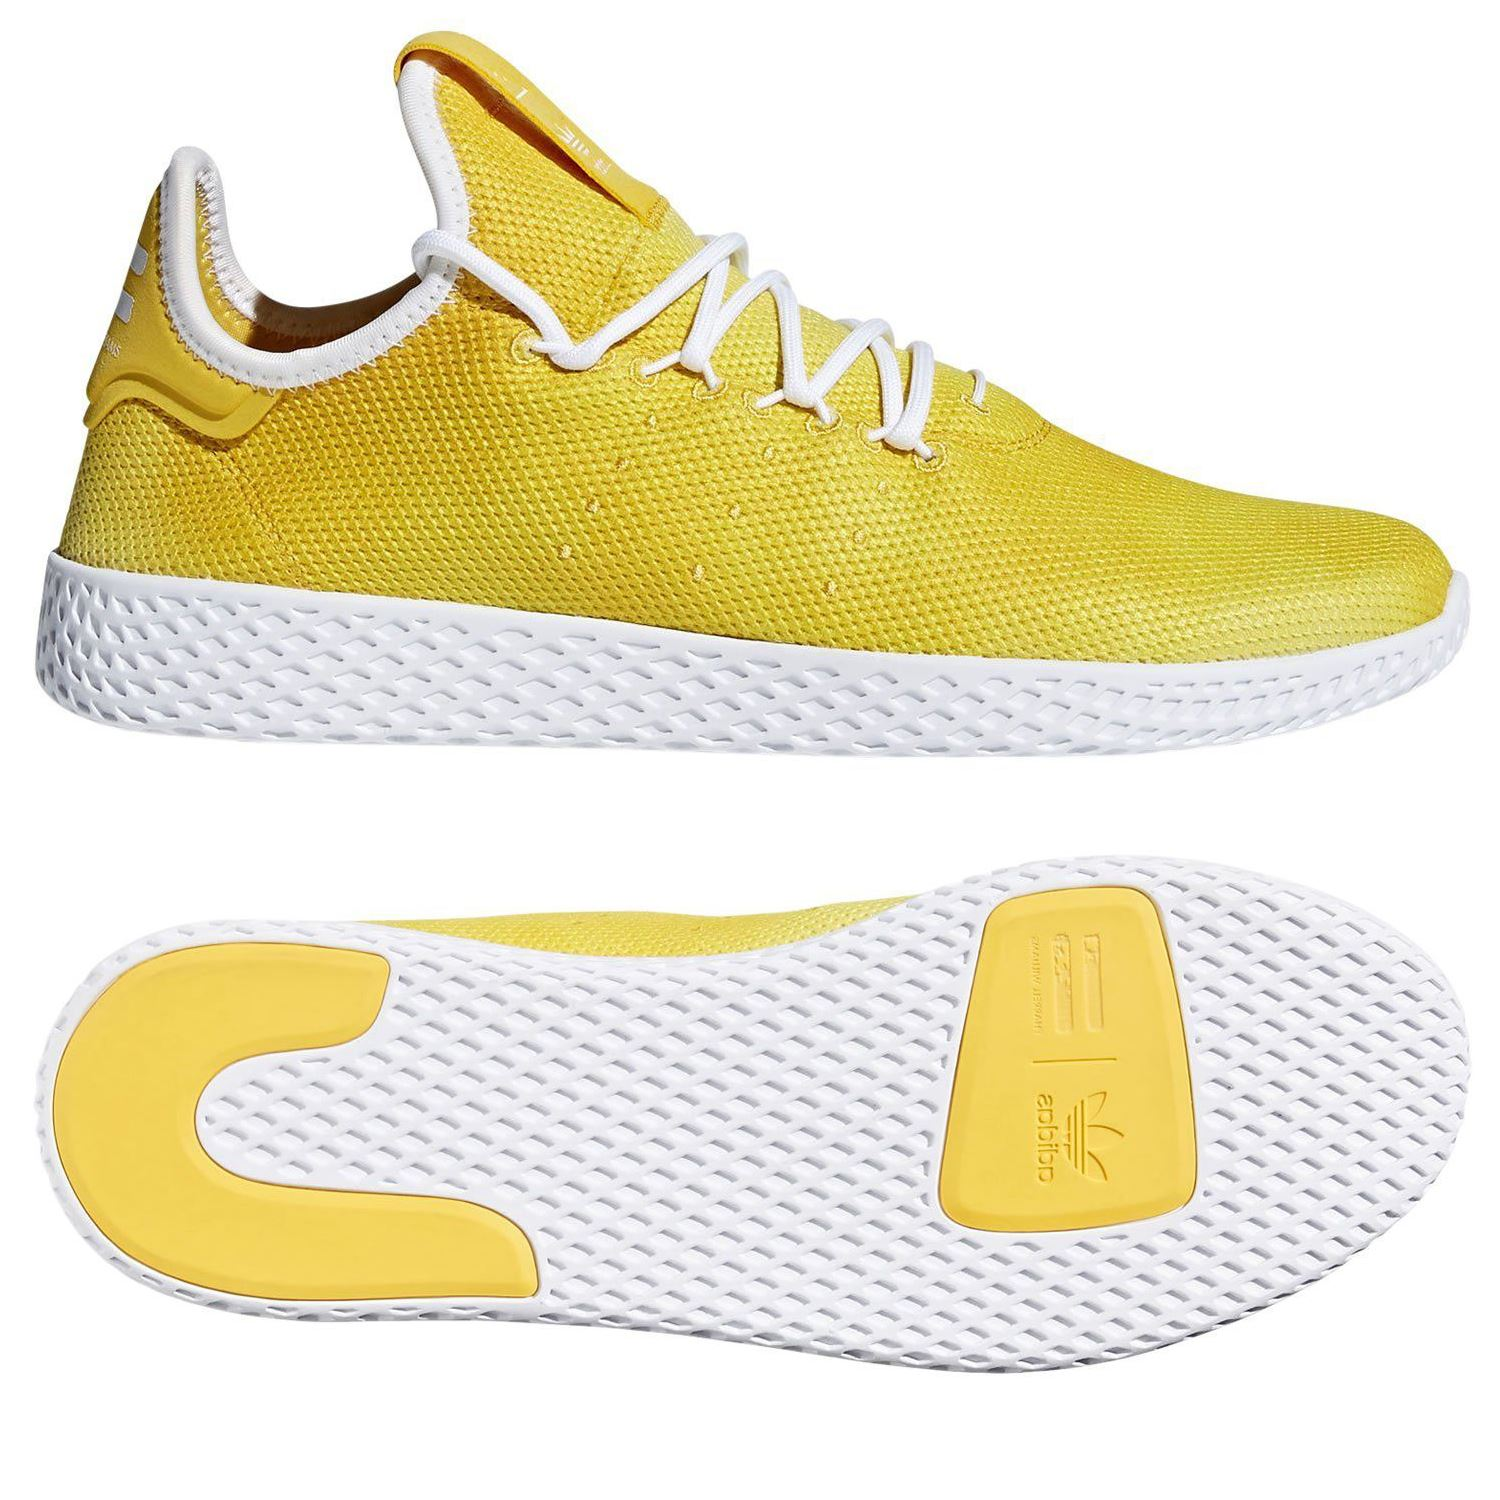 adidas ORIGINALS PHARRELL WILLIAMS HU TENNIS SHOES TRAINERS SNEAKERS MEN S  BNWB 607a21a75eb